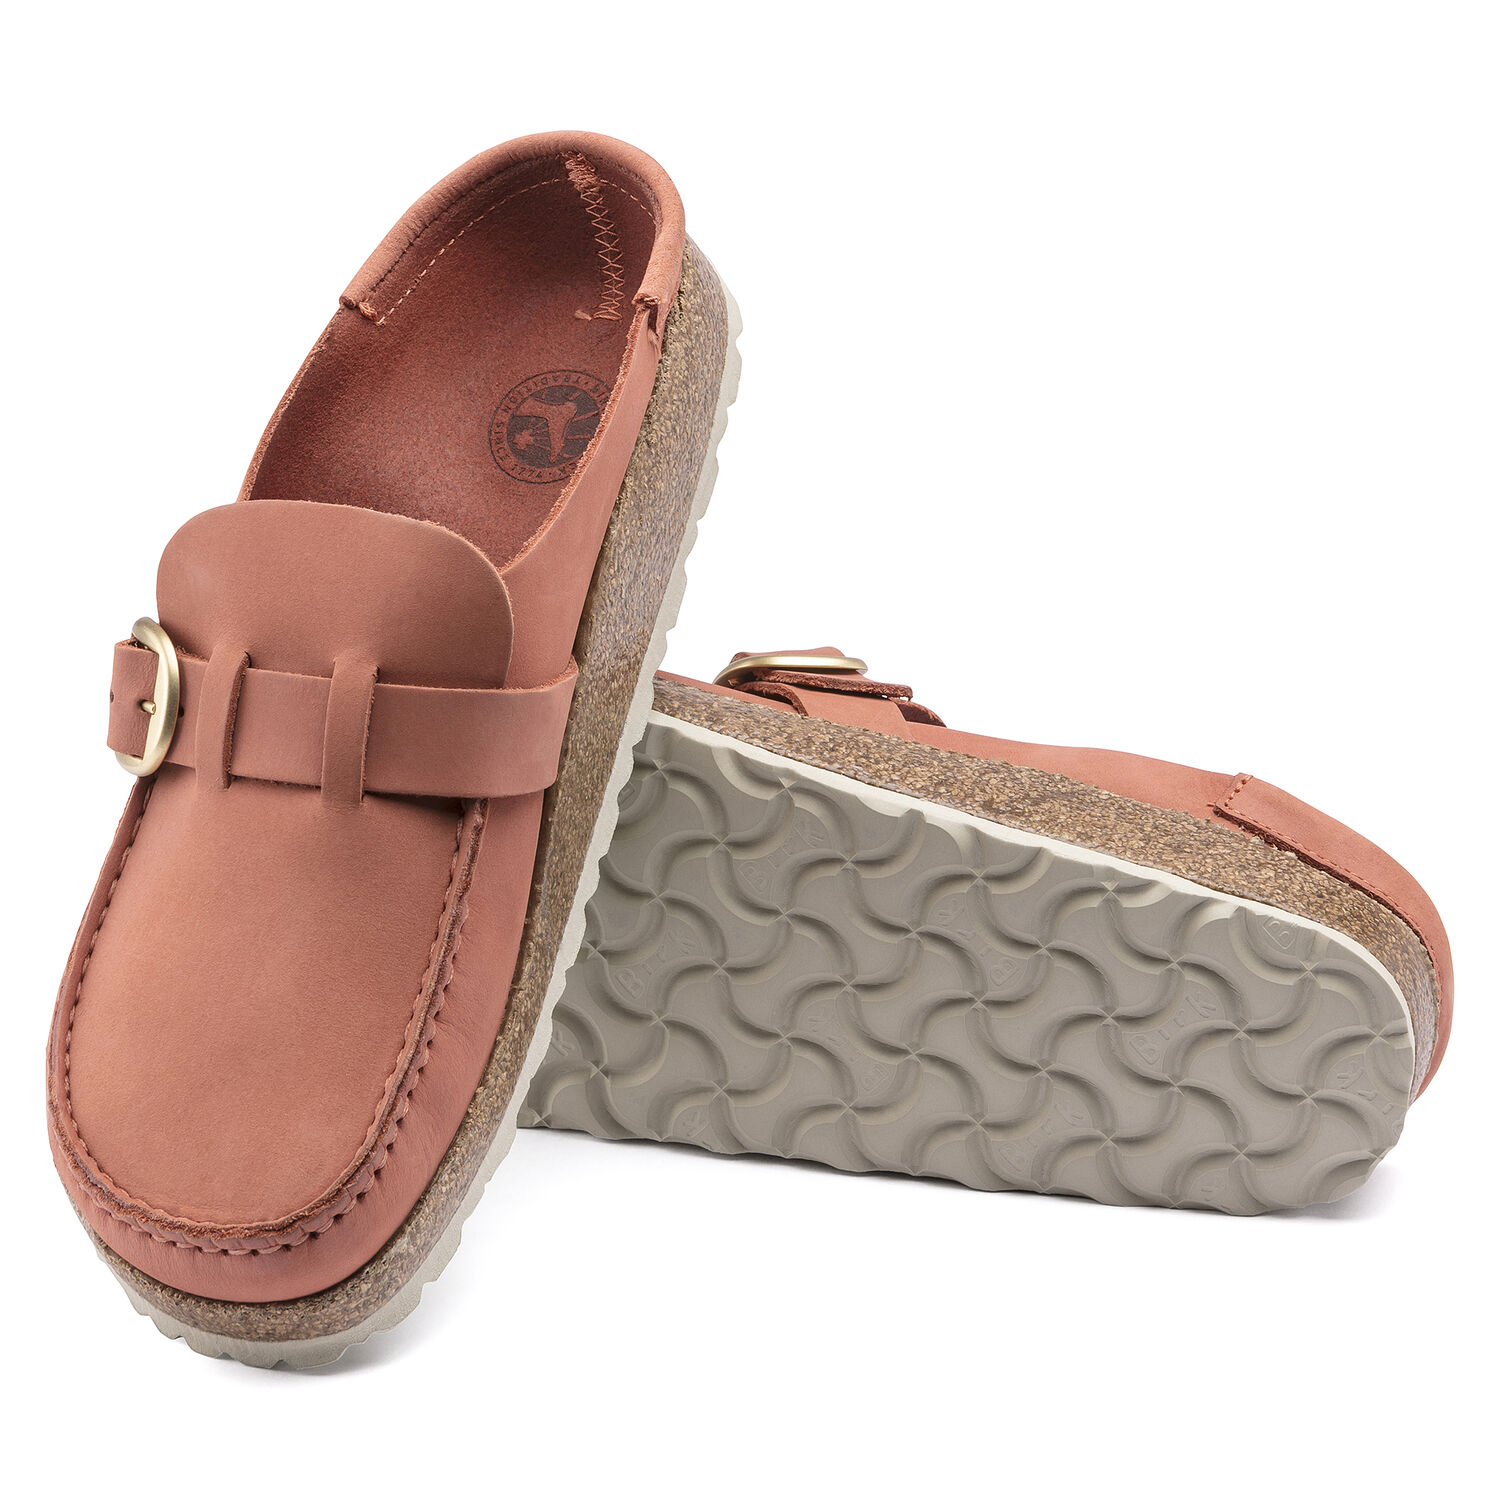 Buckley Nubuck Leather